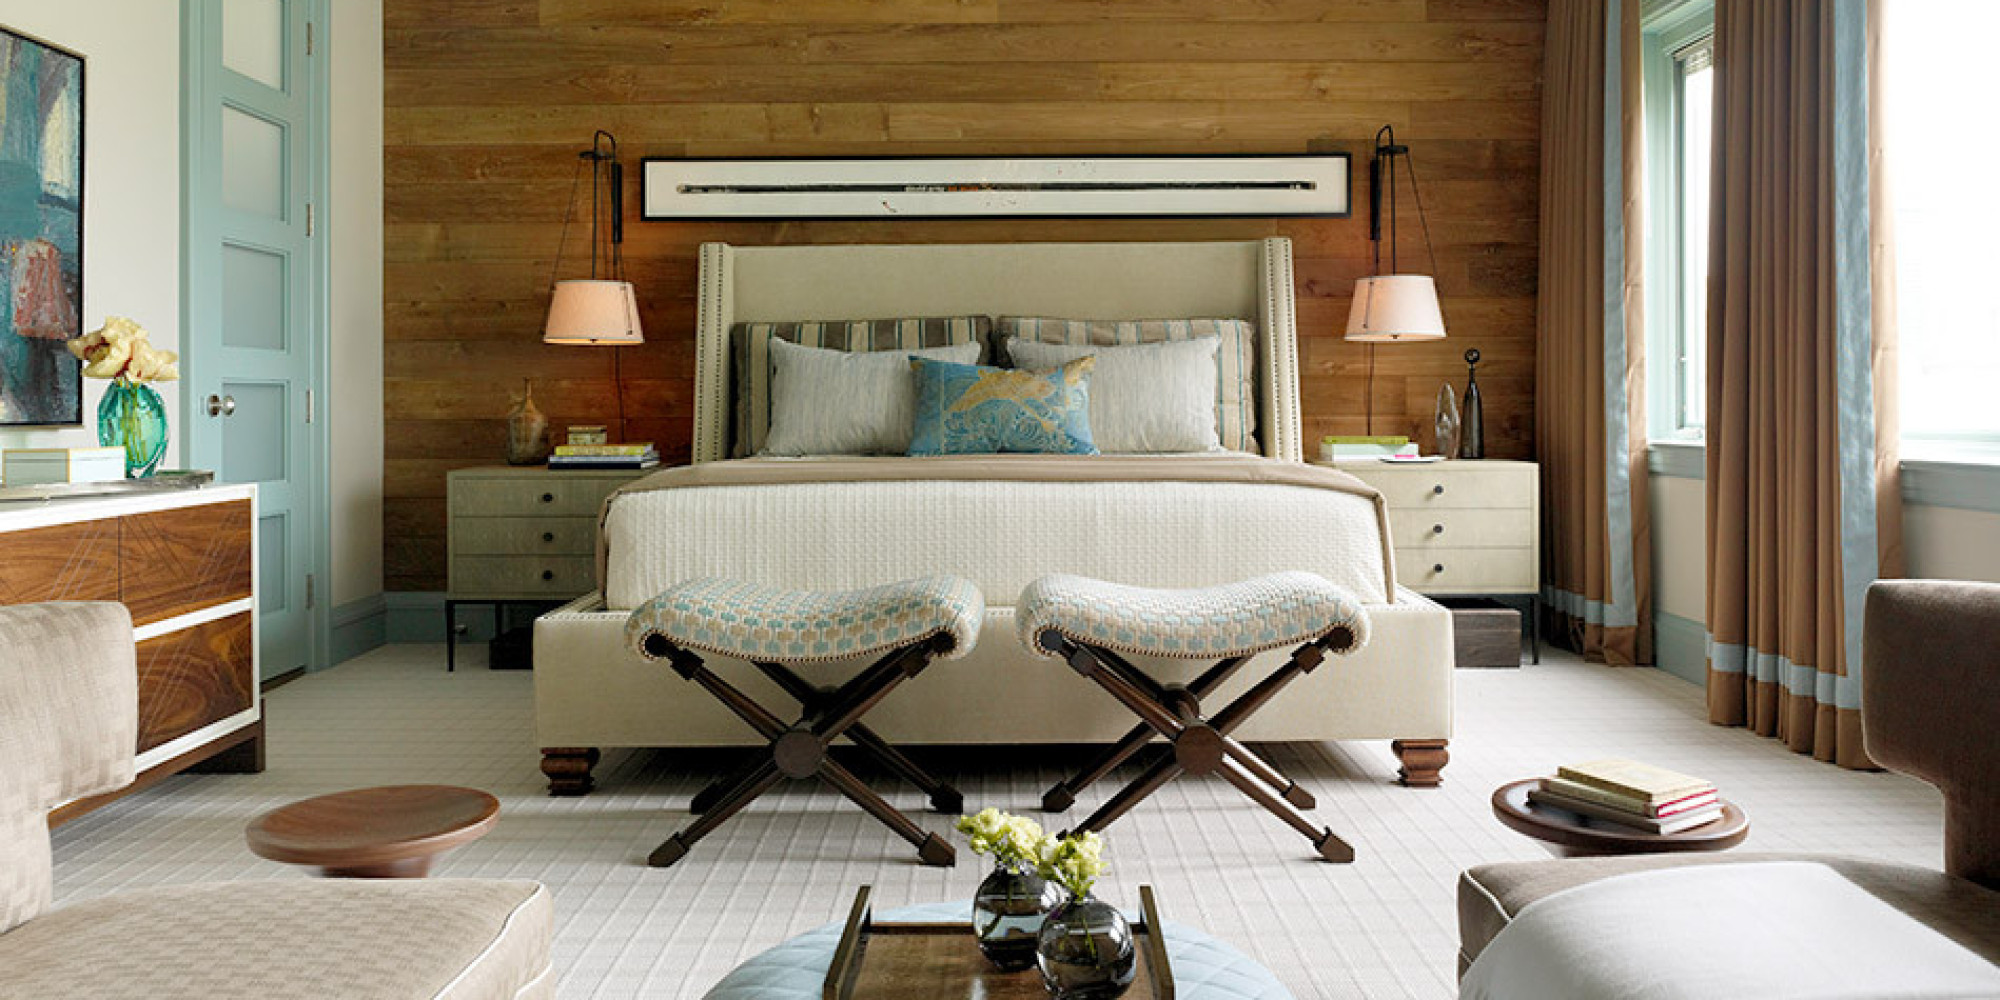 Best Rustic Bedroom Ideas Defined For High Inspiration: 5 Design Secrets From The World's Best Hotels